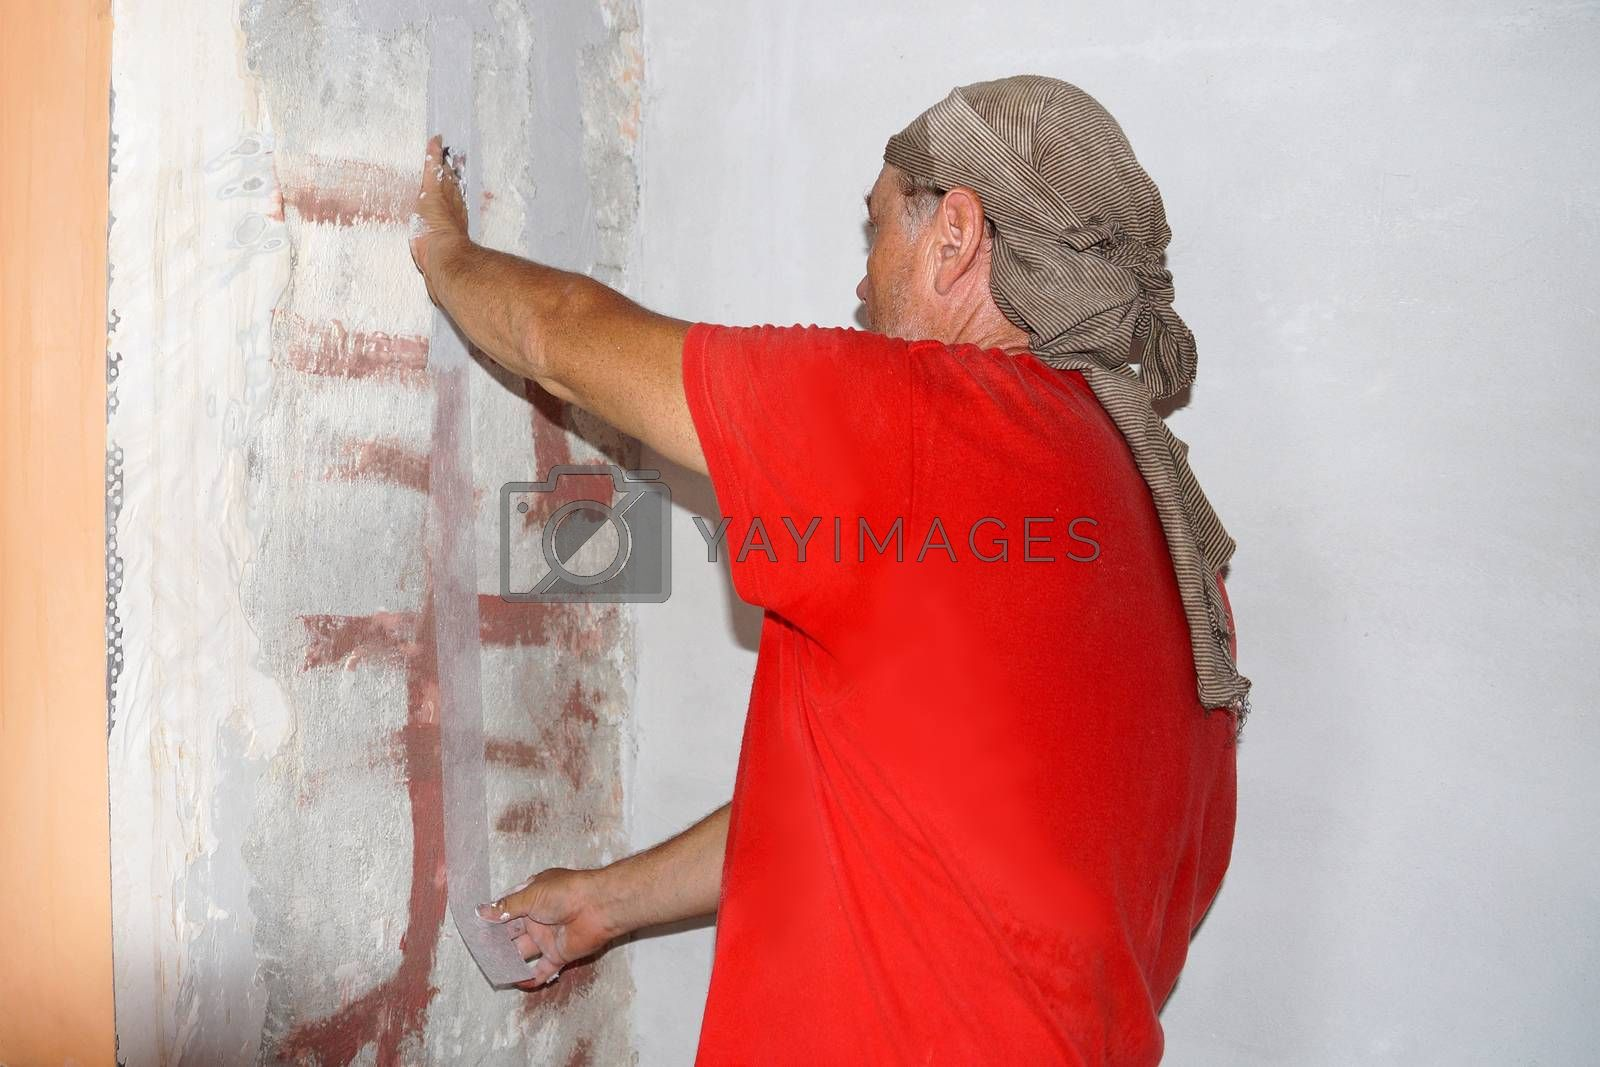 a man gluing a reinforcing tape to a crack in a wall.